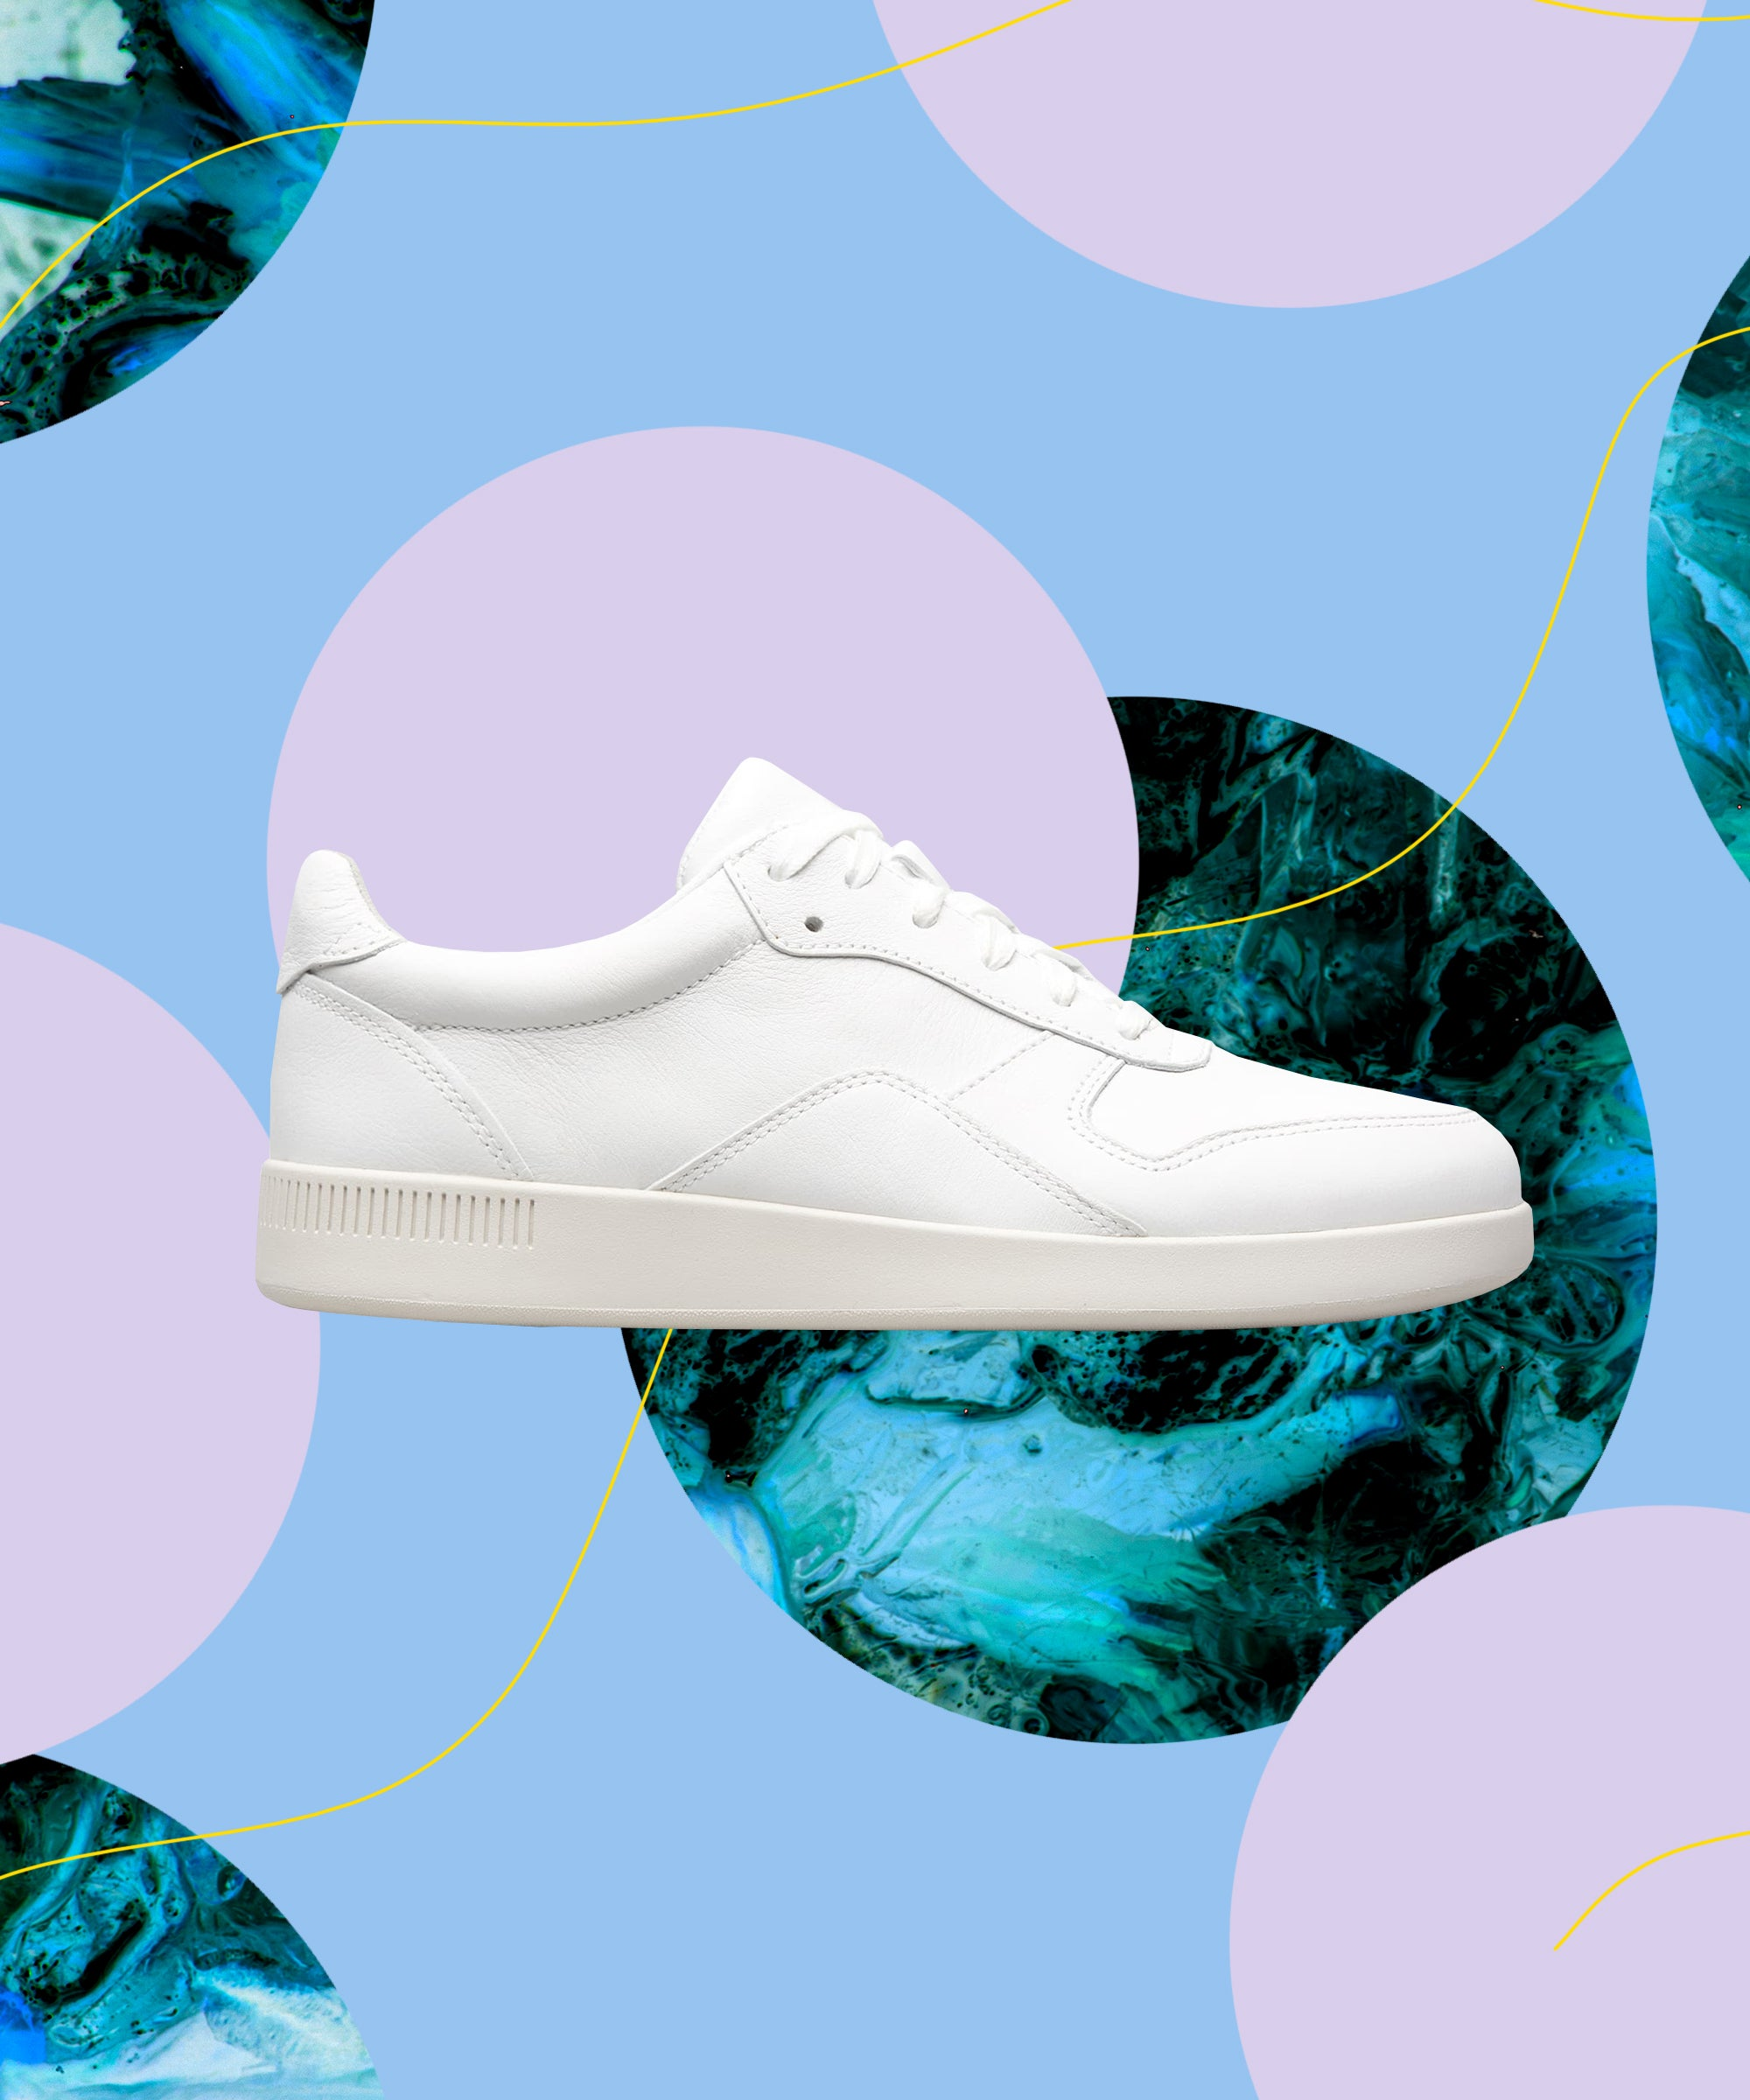 Best White Sneakers For Women 2020 Cool New Trends